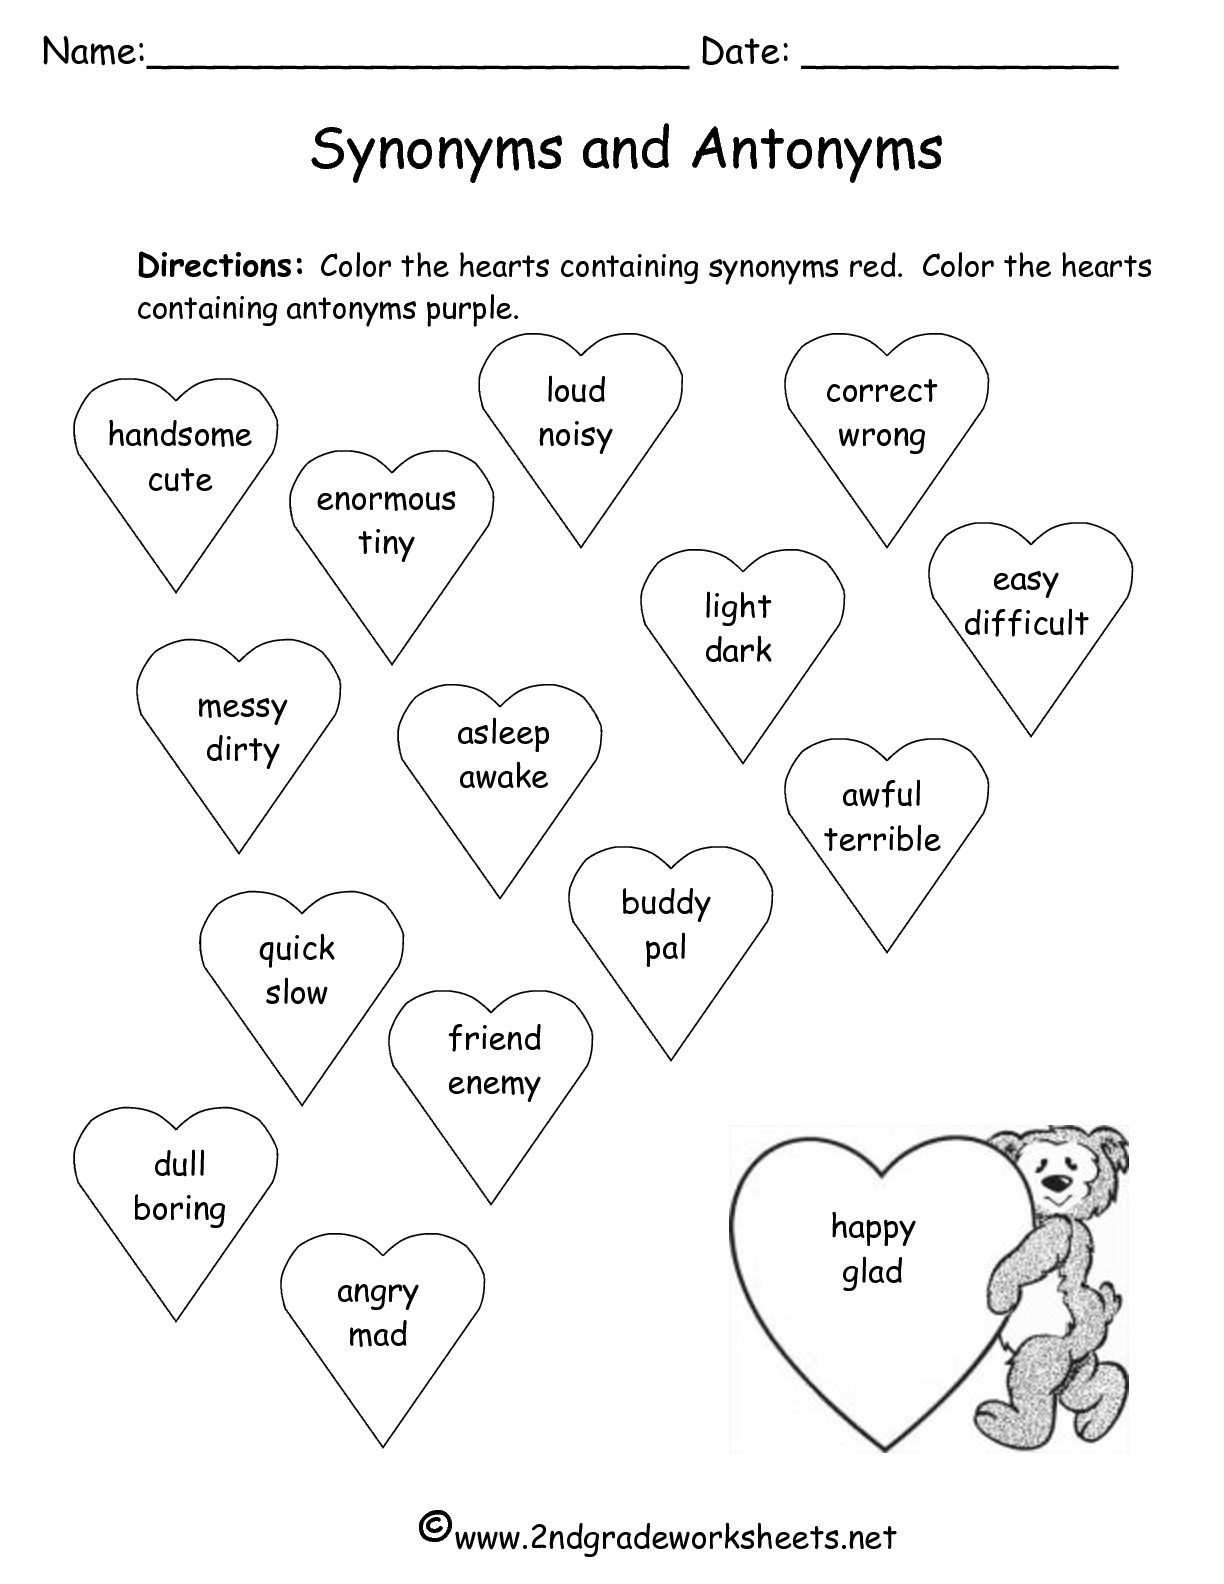 Valentines Day Printouts and Worksheets – Synonym Antonym Worksheet